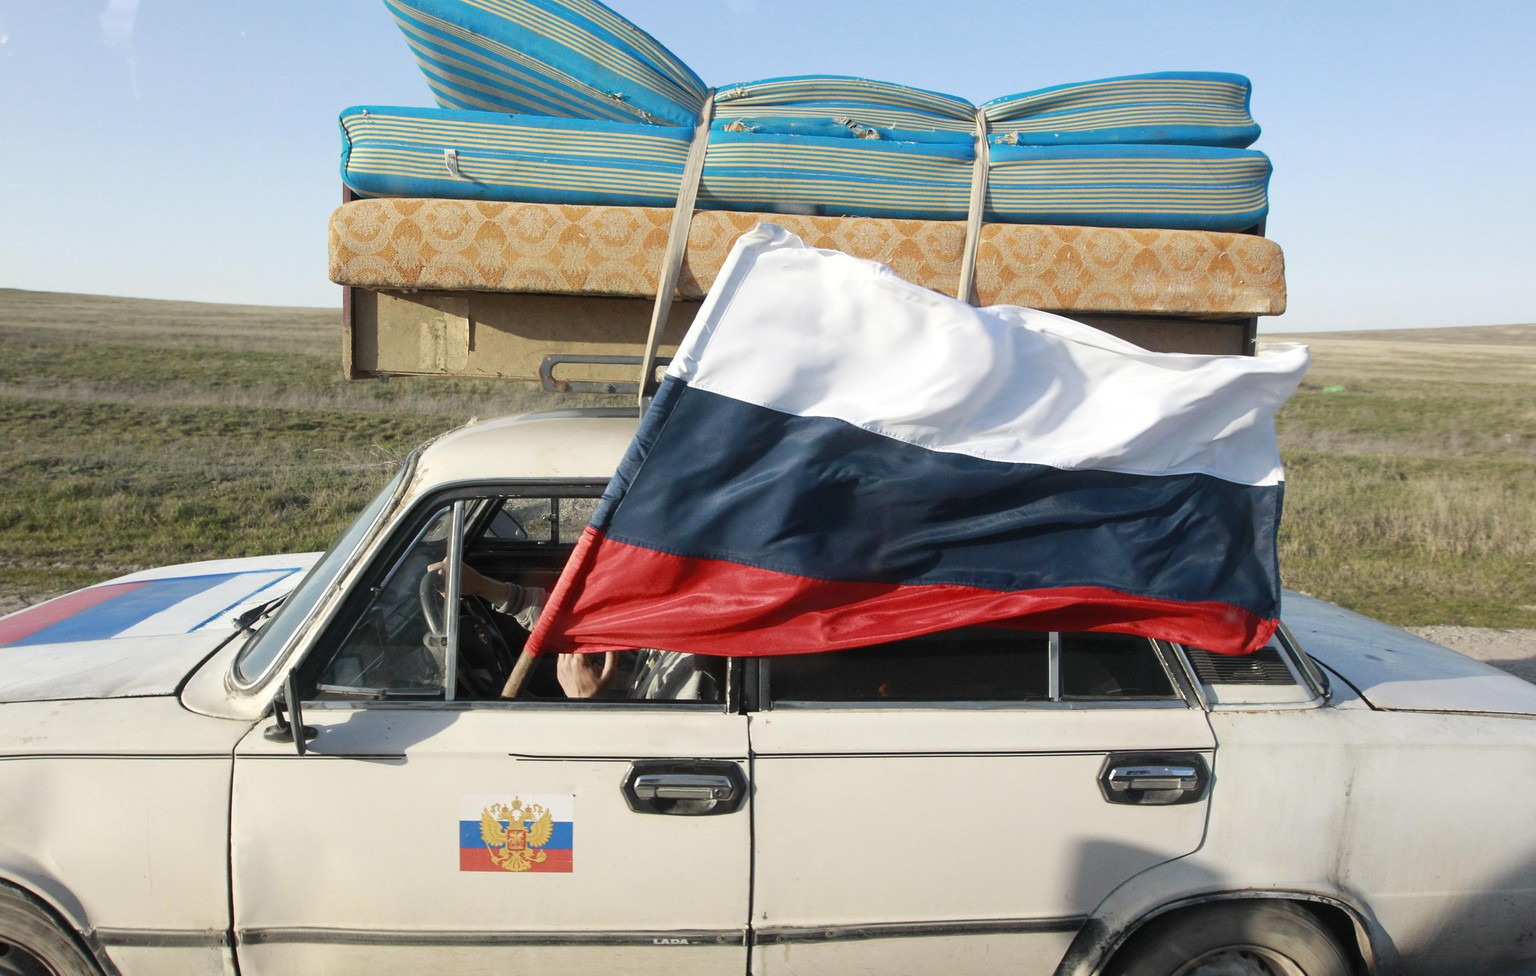 A car drives with a Russian flag on a road outside the Crimean port city of Feodosia in this March 24, 2014 file photo. Six years after losing land in a war with Russia, Georgians believe the struggle for Ukraine will decide their own fate, and hope NATO and the European Union will now speed up their integration into the Western fold. Picture taken March 24, 2014. To match Analysis story UKRAINE-CRISIS/GEORGIA REUTERS/Shamil Zhumatov/Files (UKRAINE - Tags: POLITICS MILITARY)